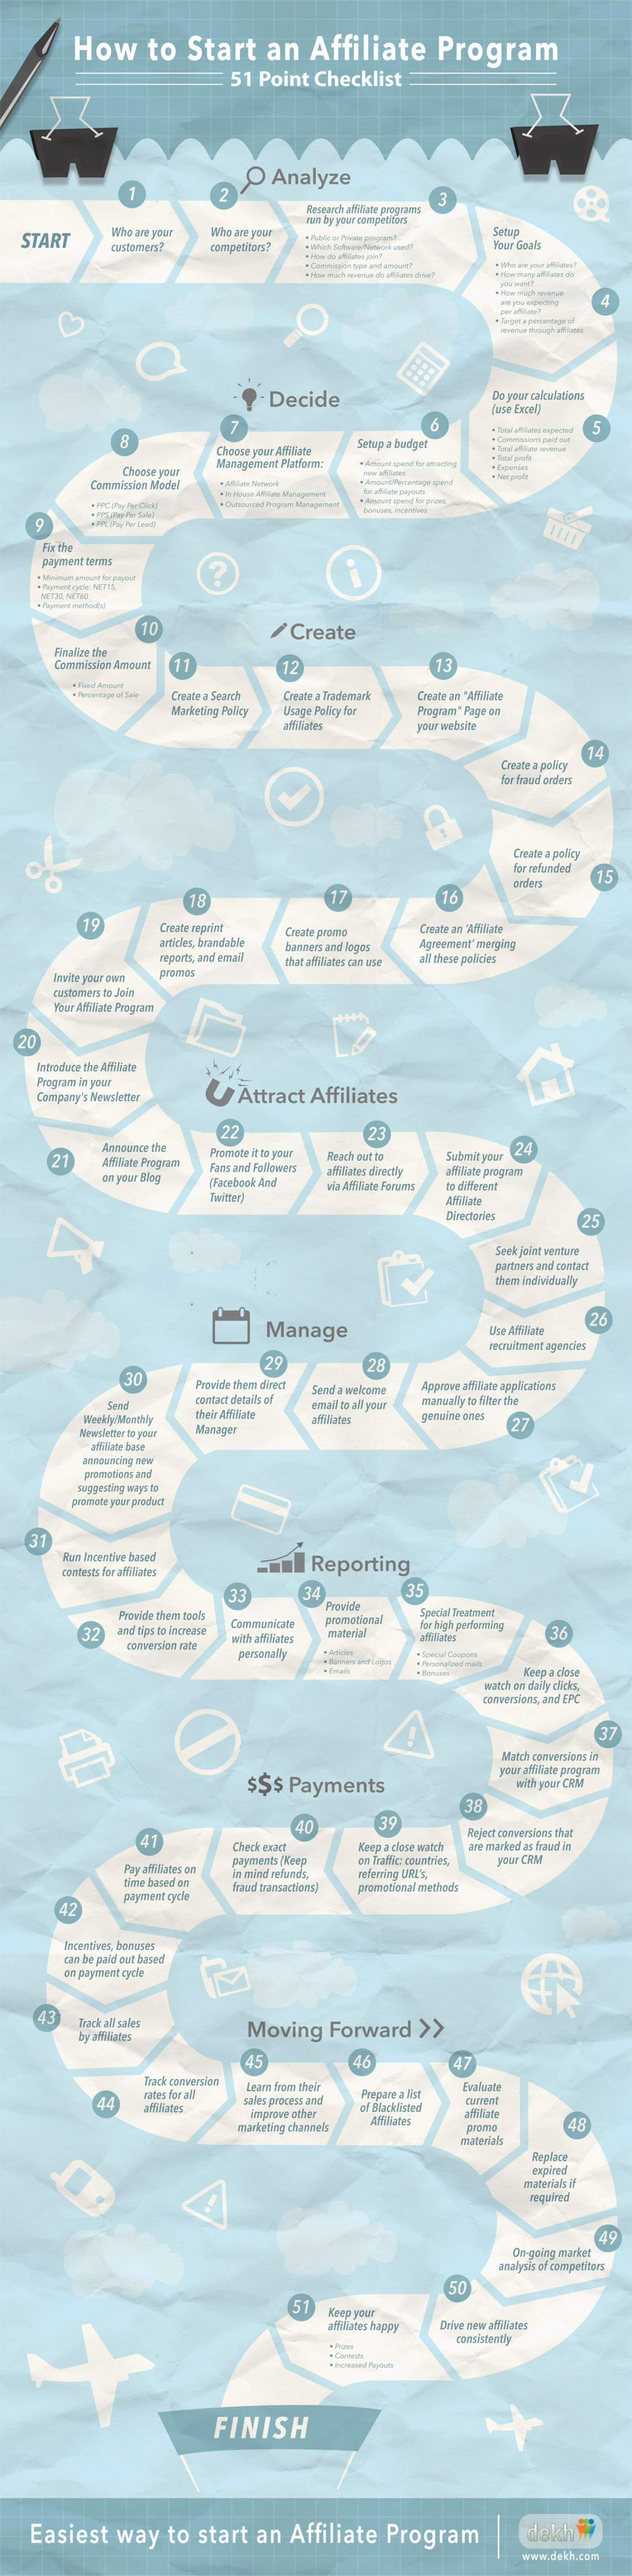 How To Start An Affiliate Program: 51 Point Checklist Infographic